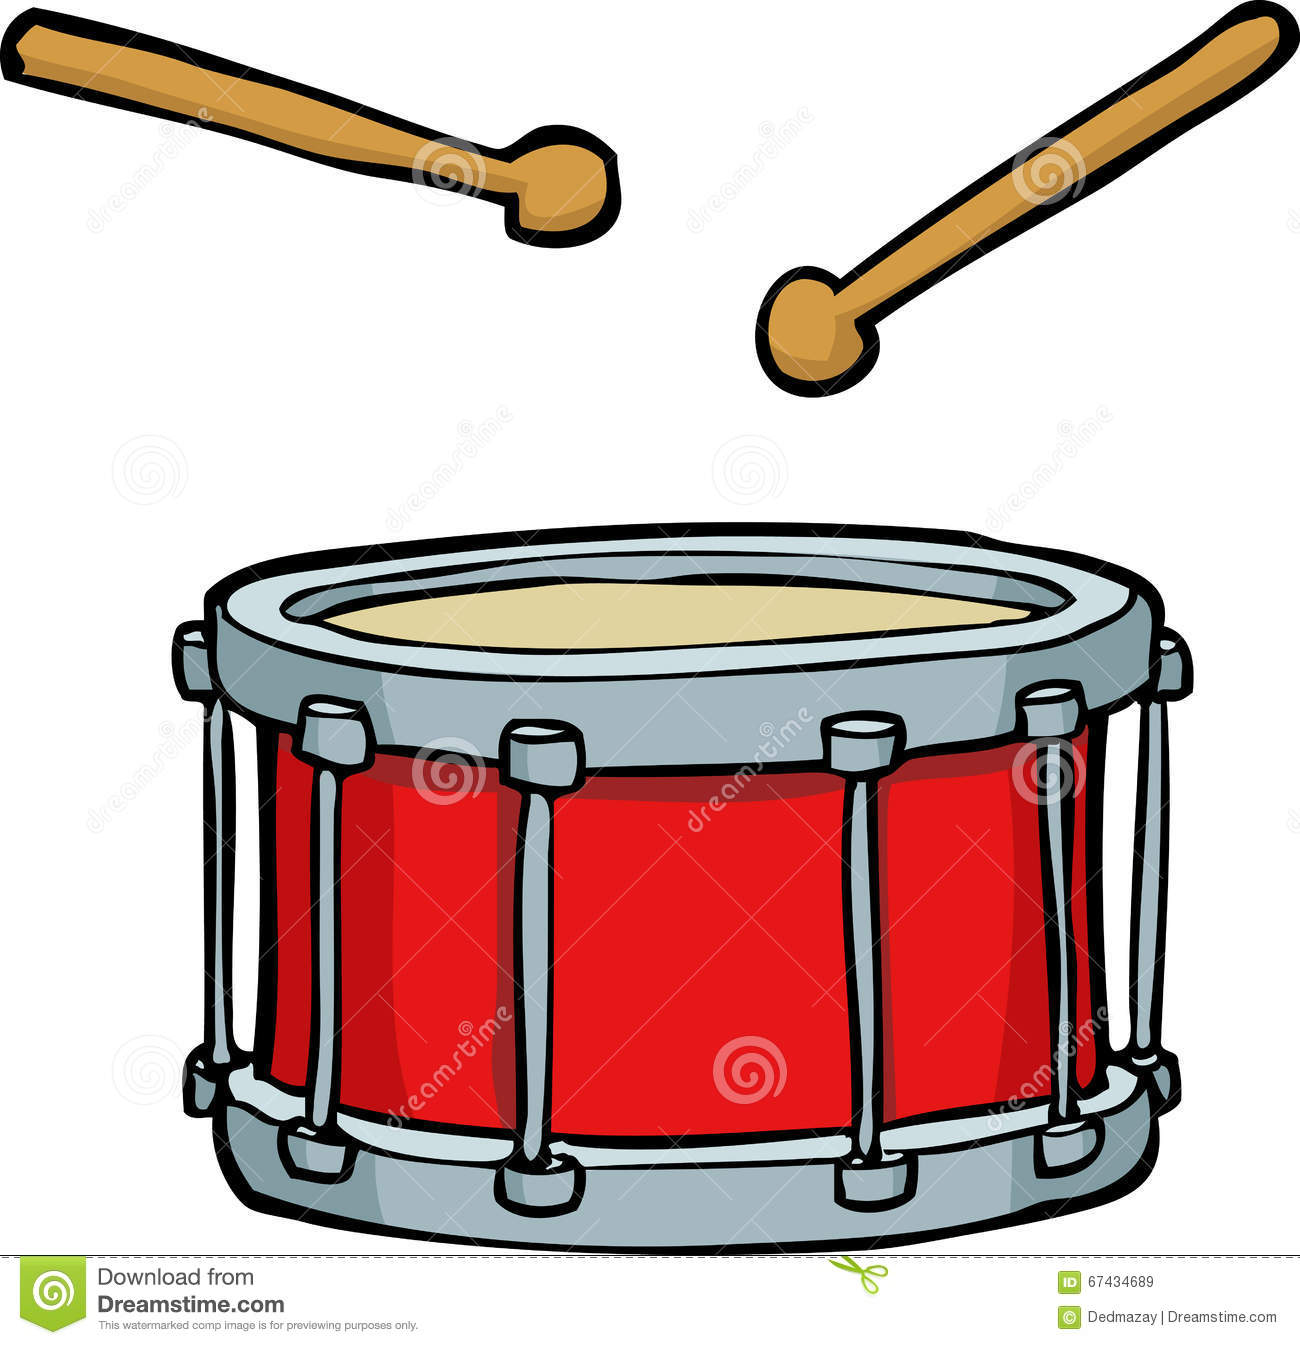 Cartoon Snare Drummer | www.pixshark.com - Images ...